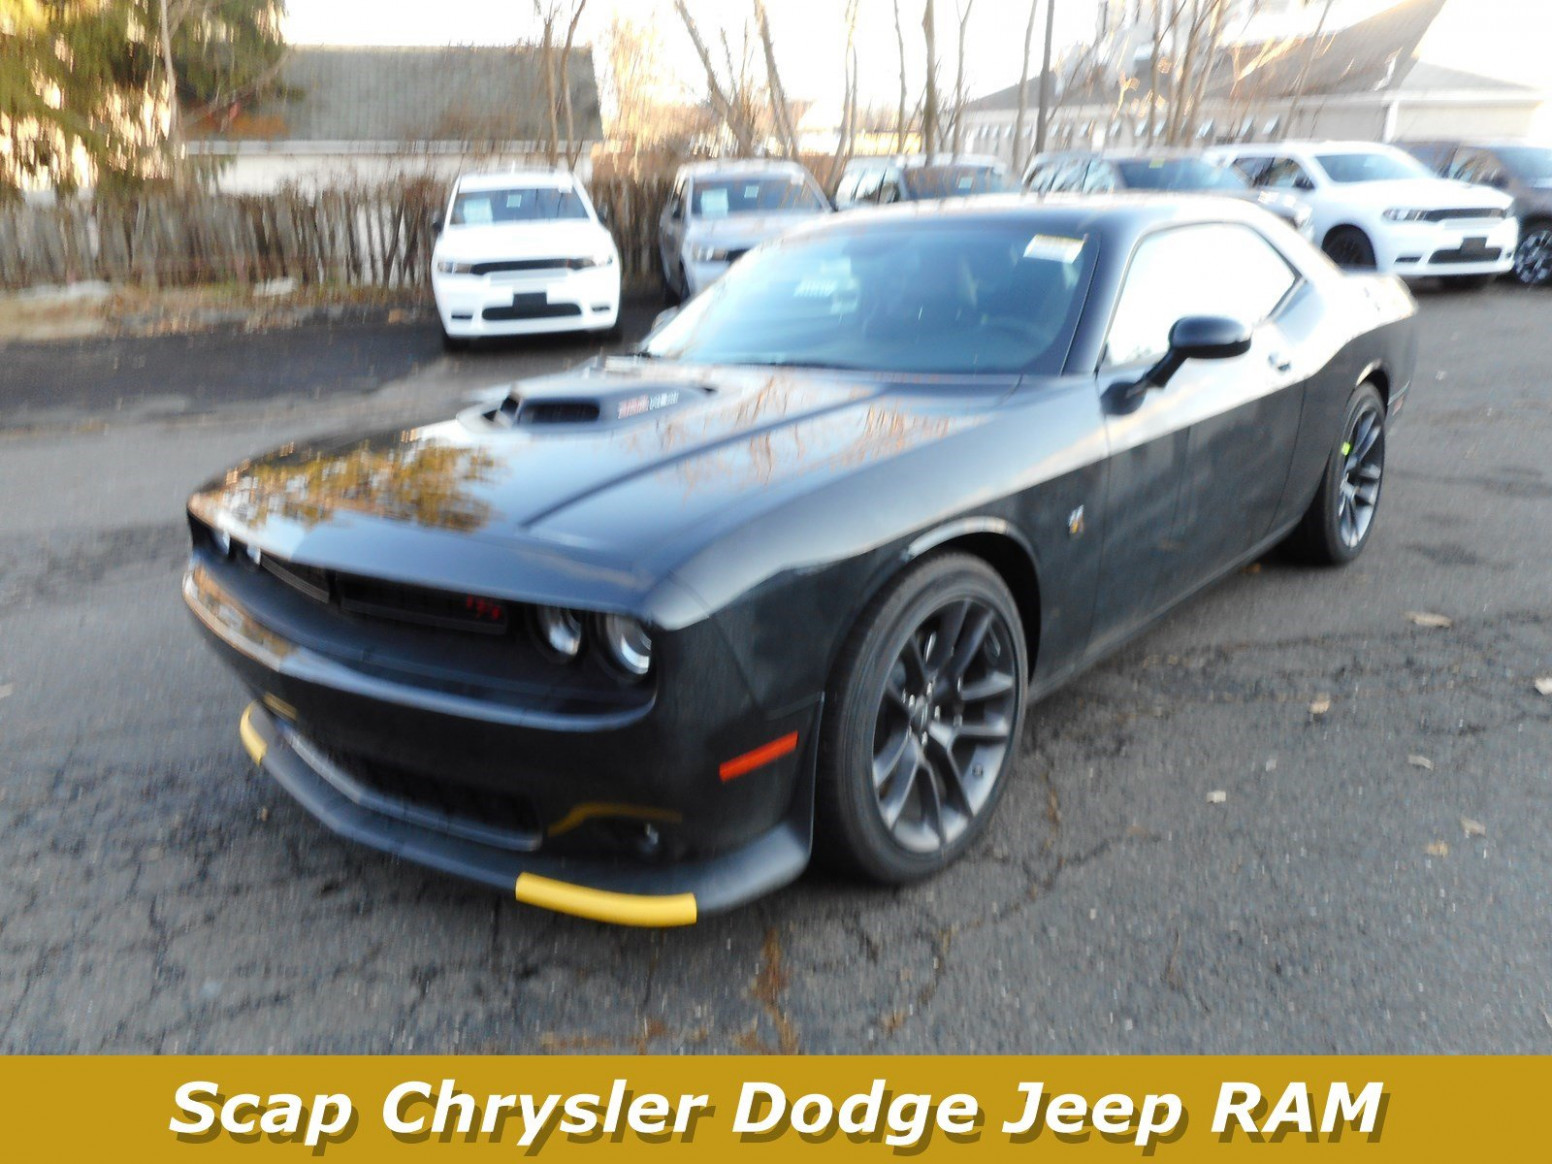 New 112 Dodge Challenger Coupe R/T SCAT PACK | Fairfield CT | VIN:  12C12CDZFJXLH1060912 - price of 2020 dodge challenger